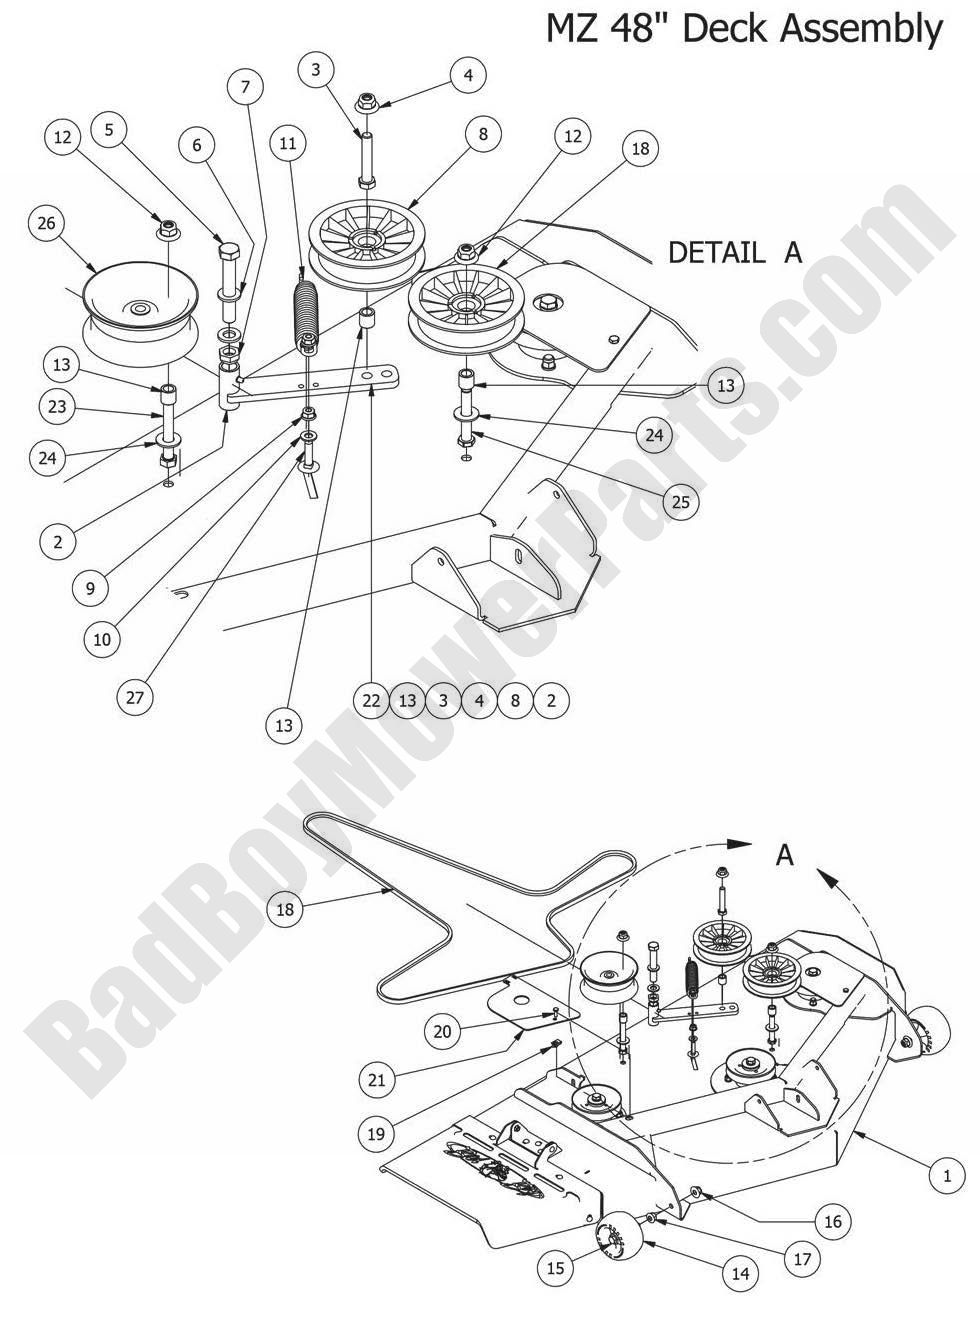 Bad Boy Mower Wiring Diagram Auto Electrical 1990 Dodge Spirit 2010 Mz Kawasaki 22 Hp 45